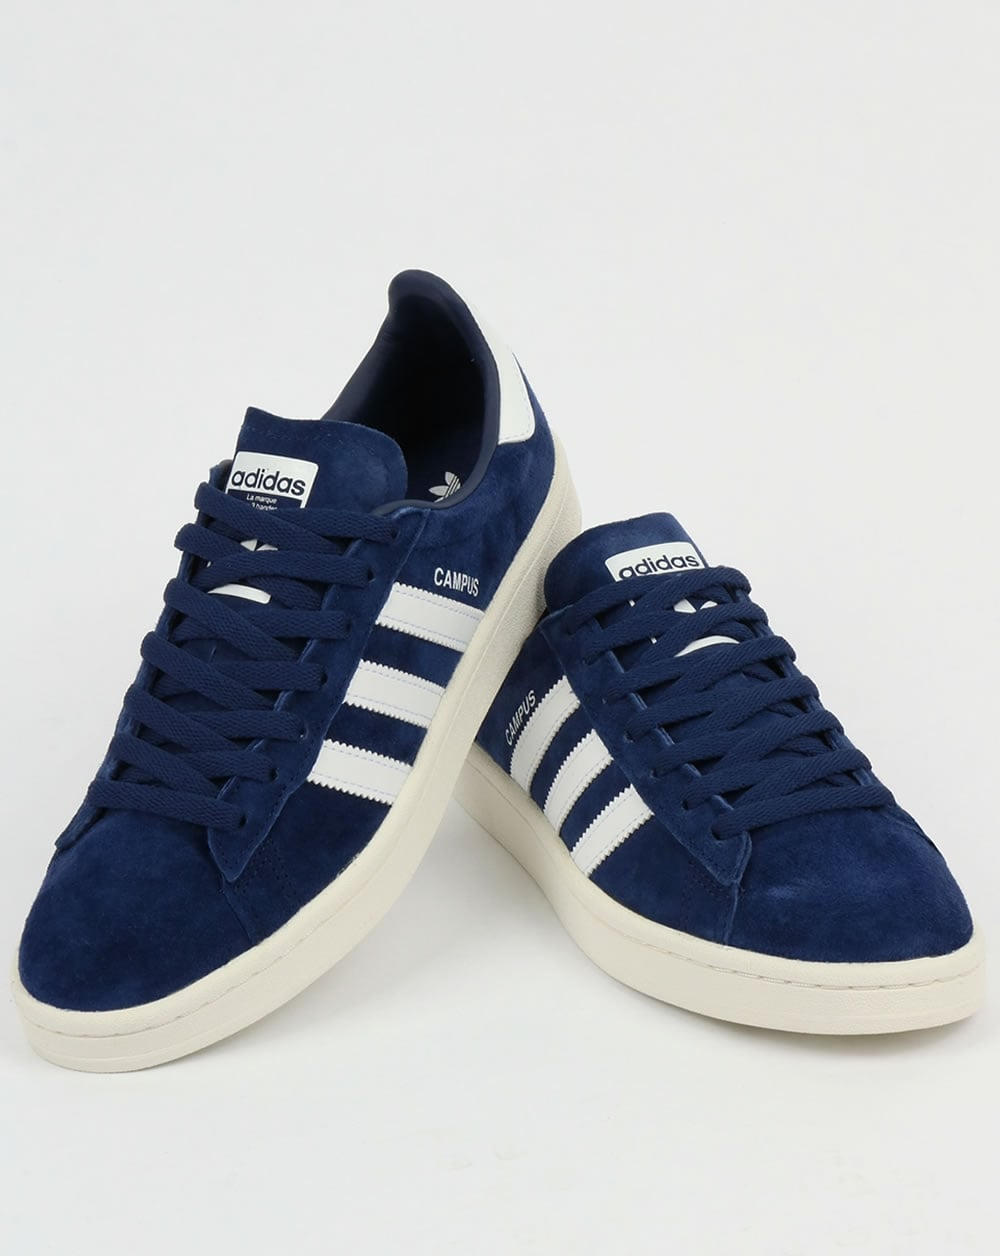 b7c89283ce3b36 adidas Trainers Adidas Campus Trainers Rich Navy White